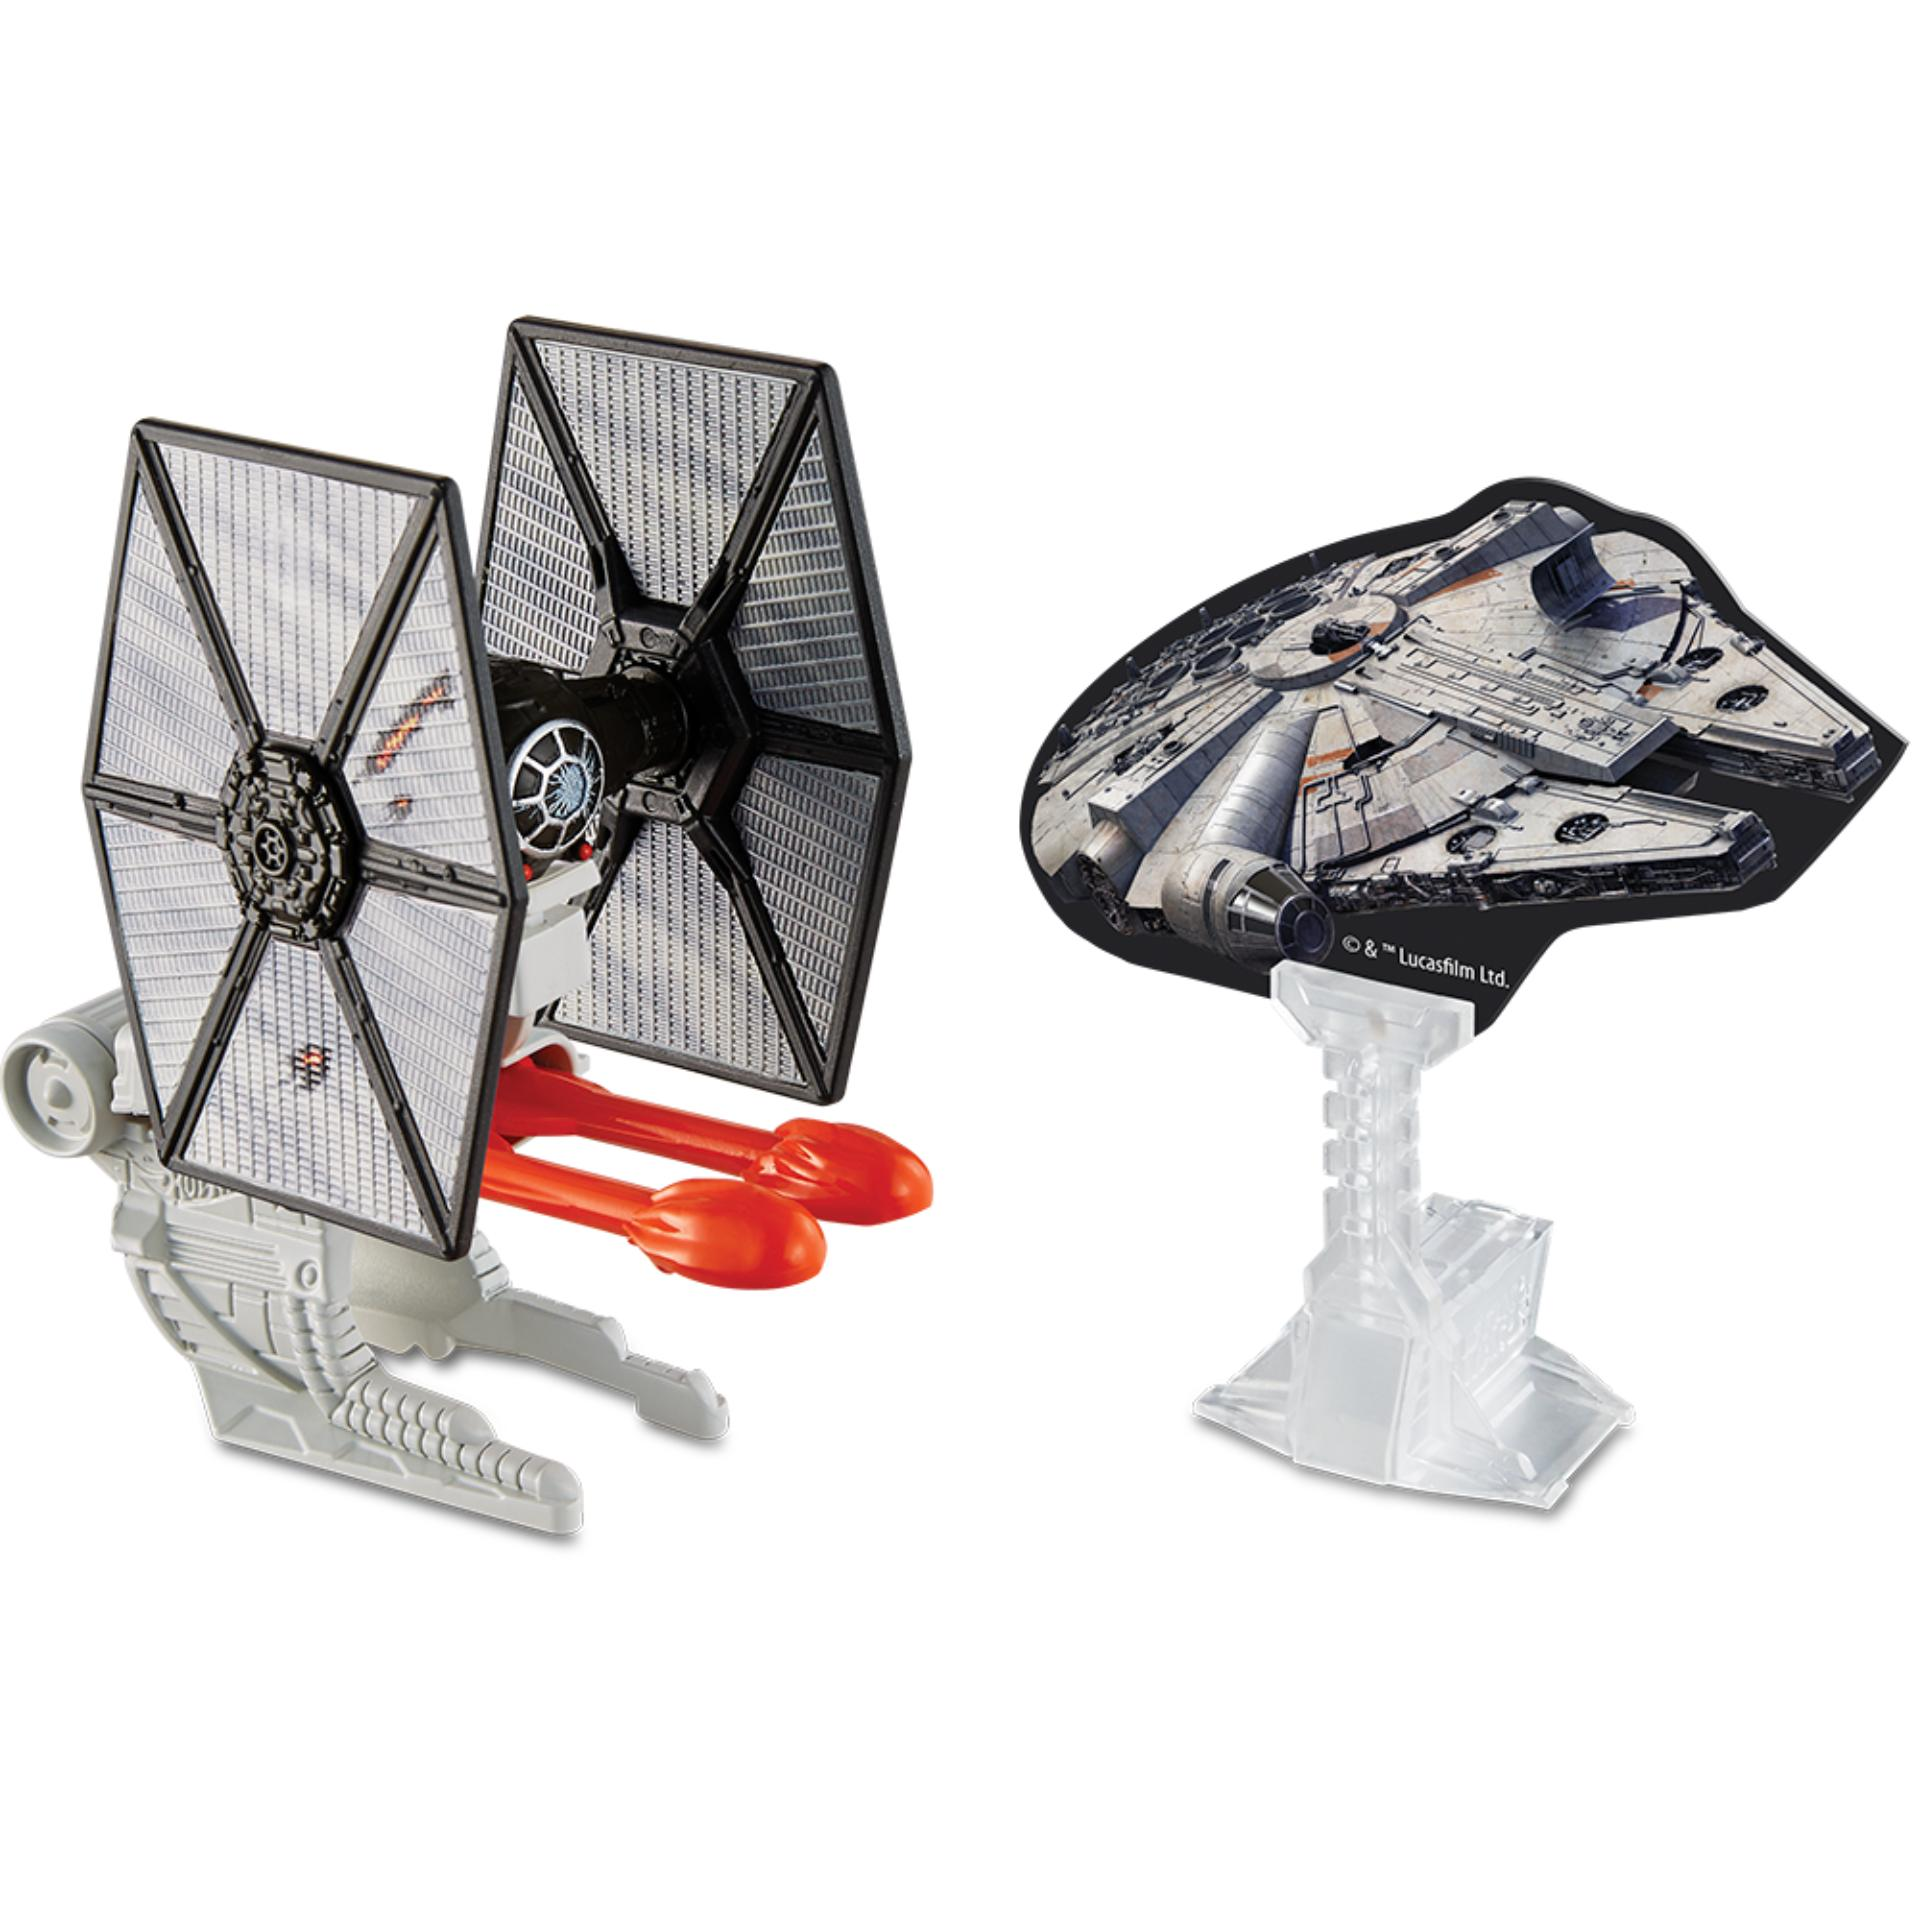 Beli Hot Wheels™ Star Wars™ Blast Attack Starship Vehicle Episode 7 Villain Starfighter Battle Damage Secara Angsuran